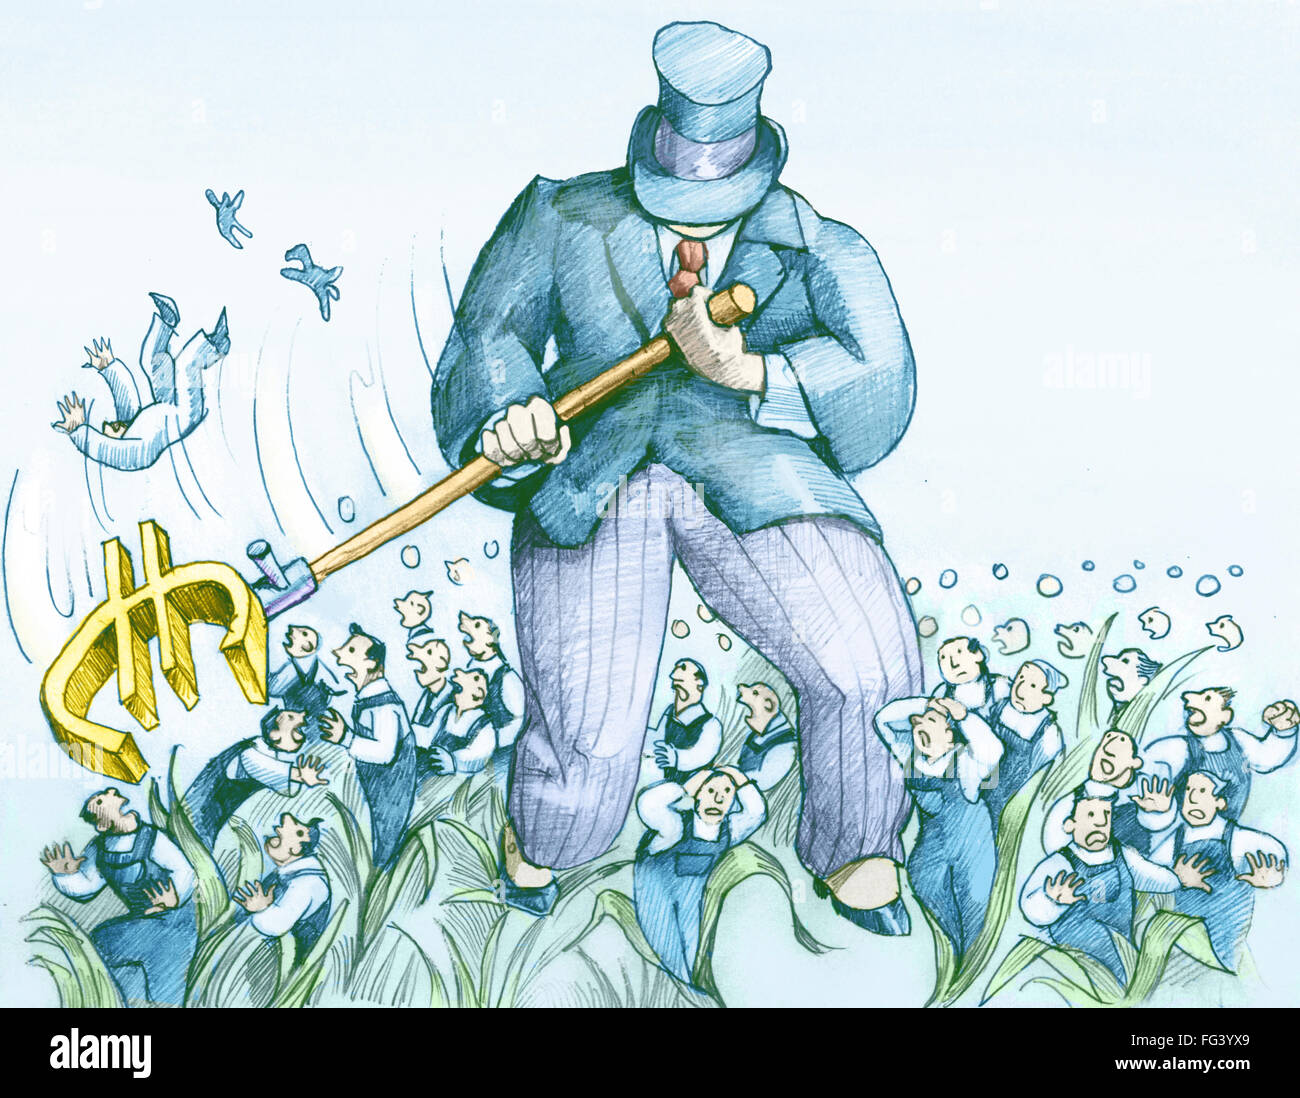 a wealthy businessman mows redundant workers with the symbol of the euro - Stock Image